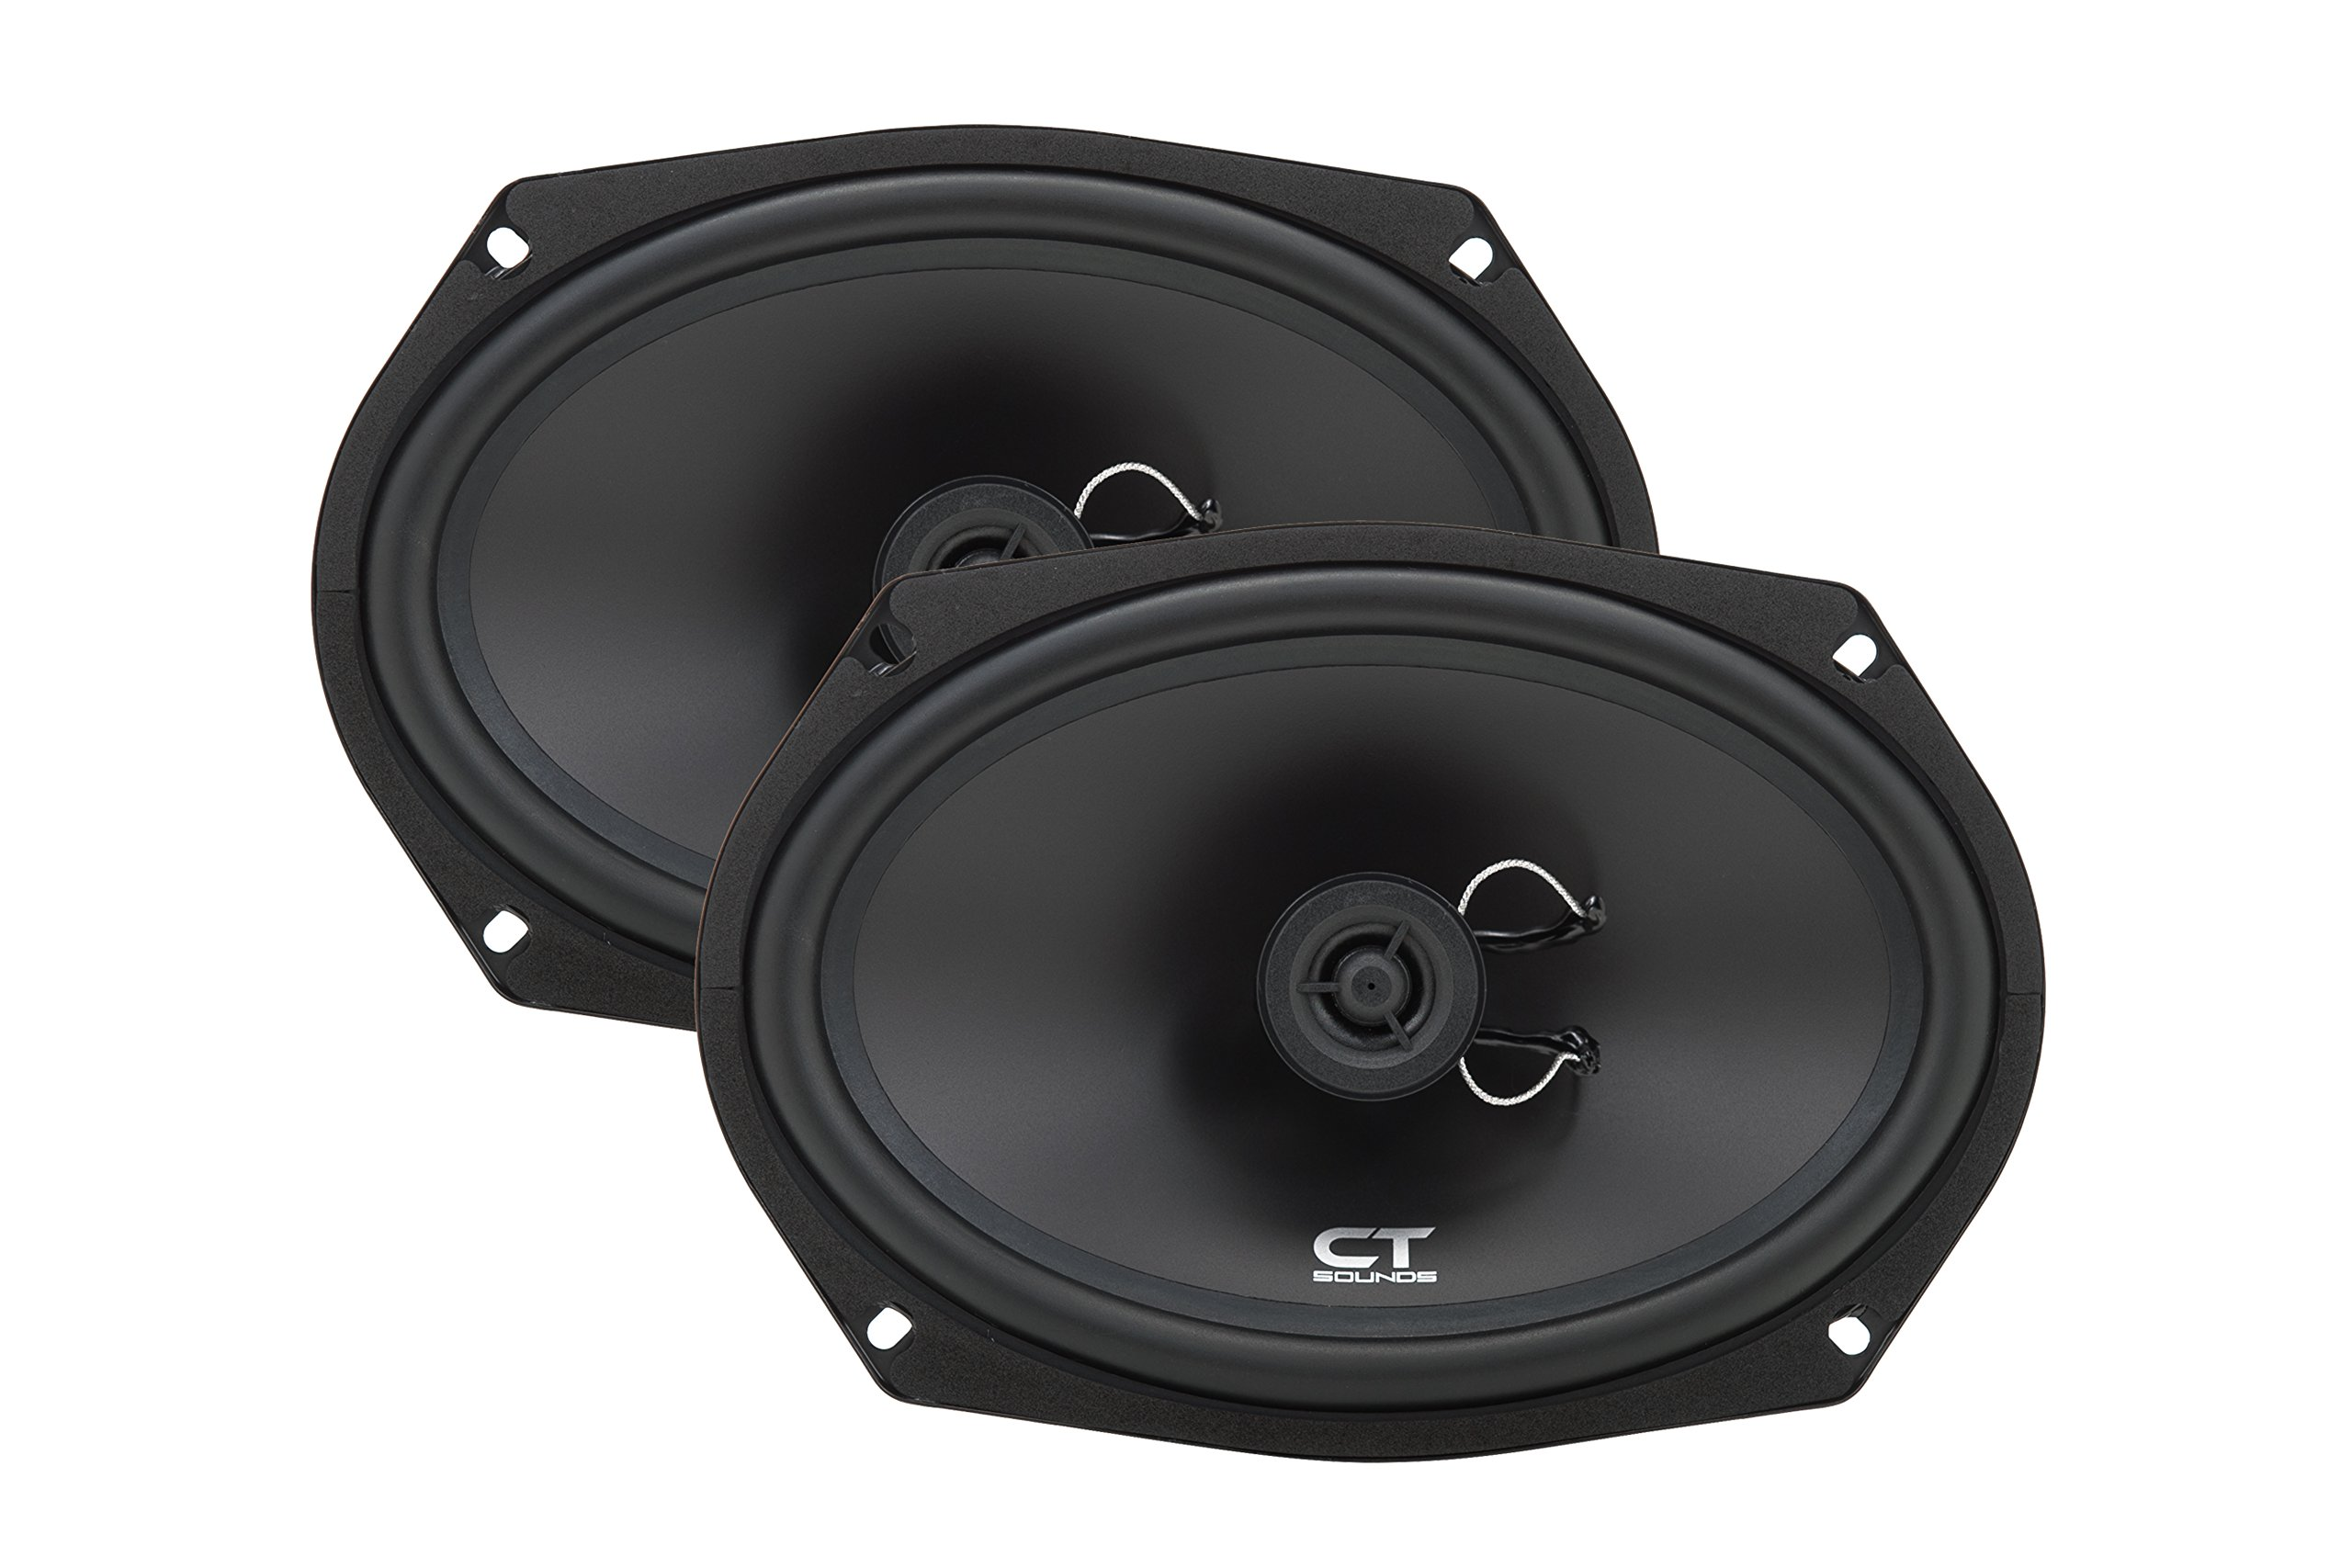 CT Sounds Bio 6x9 Inch 2 Way Silk Dome Coaxial Car Speakers (Pair)